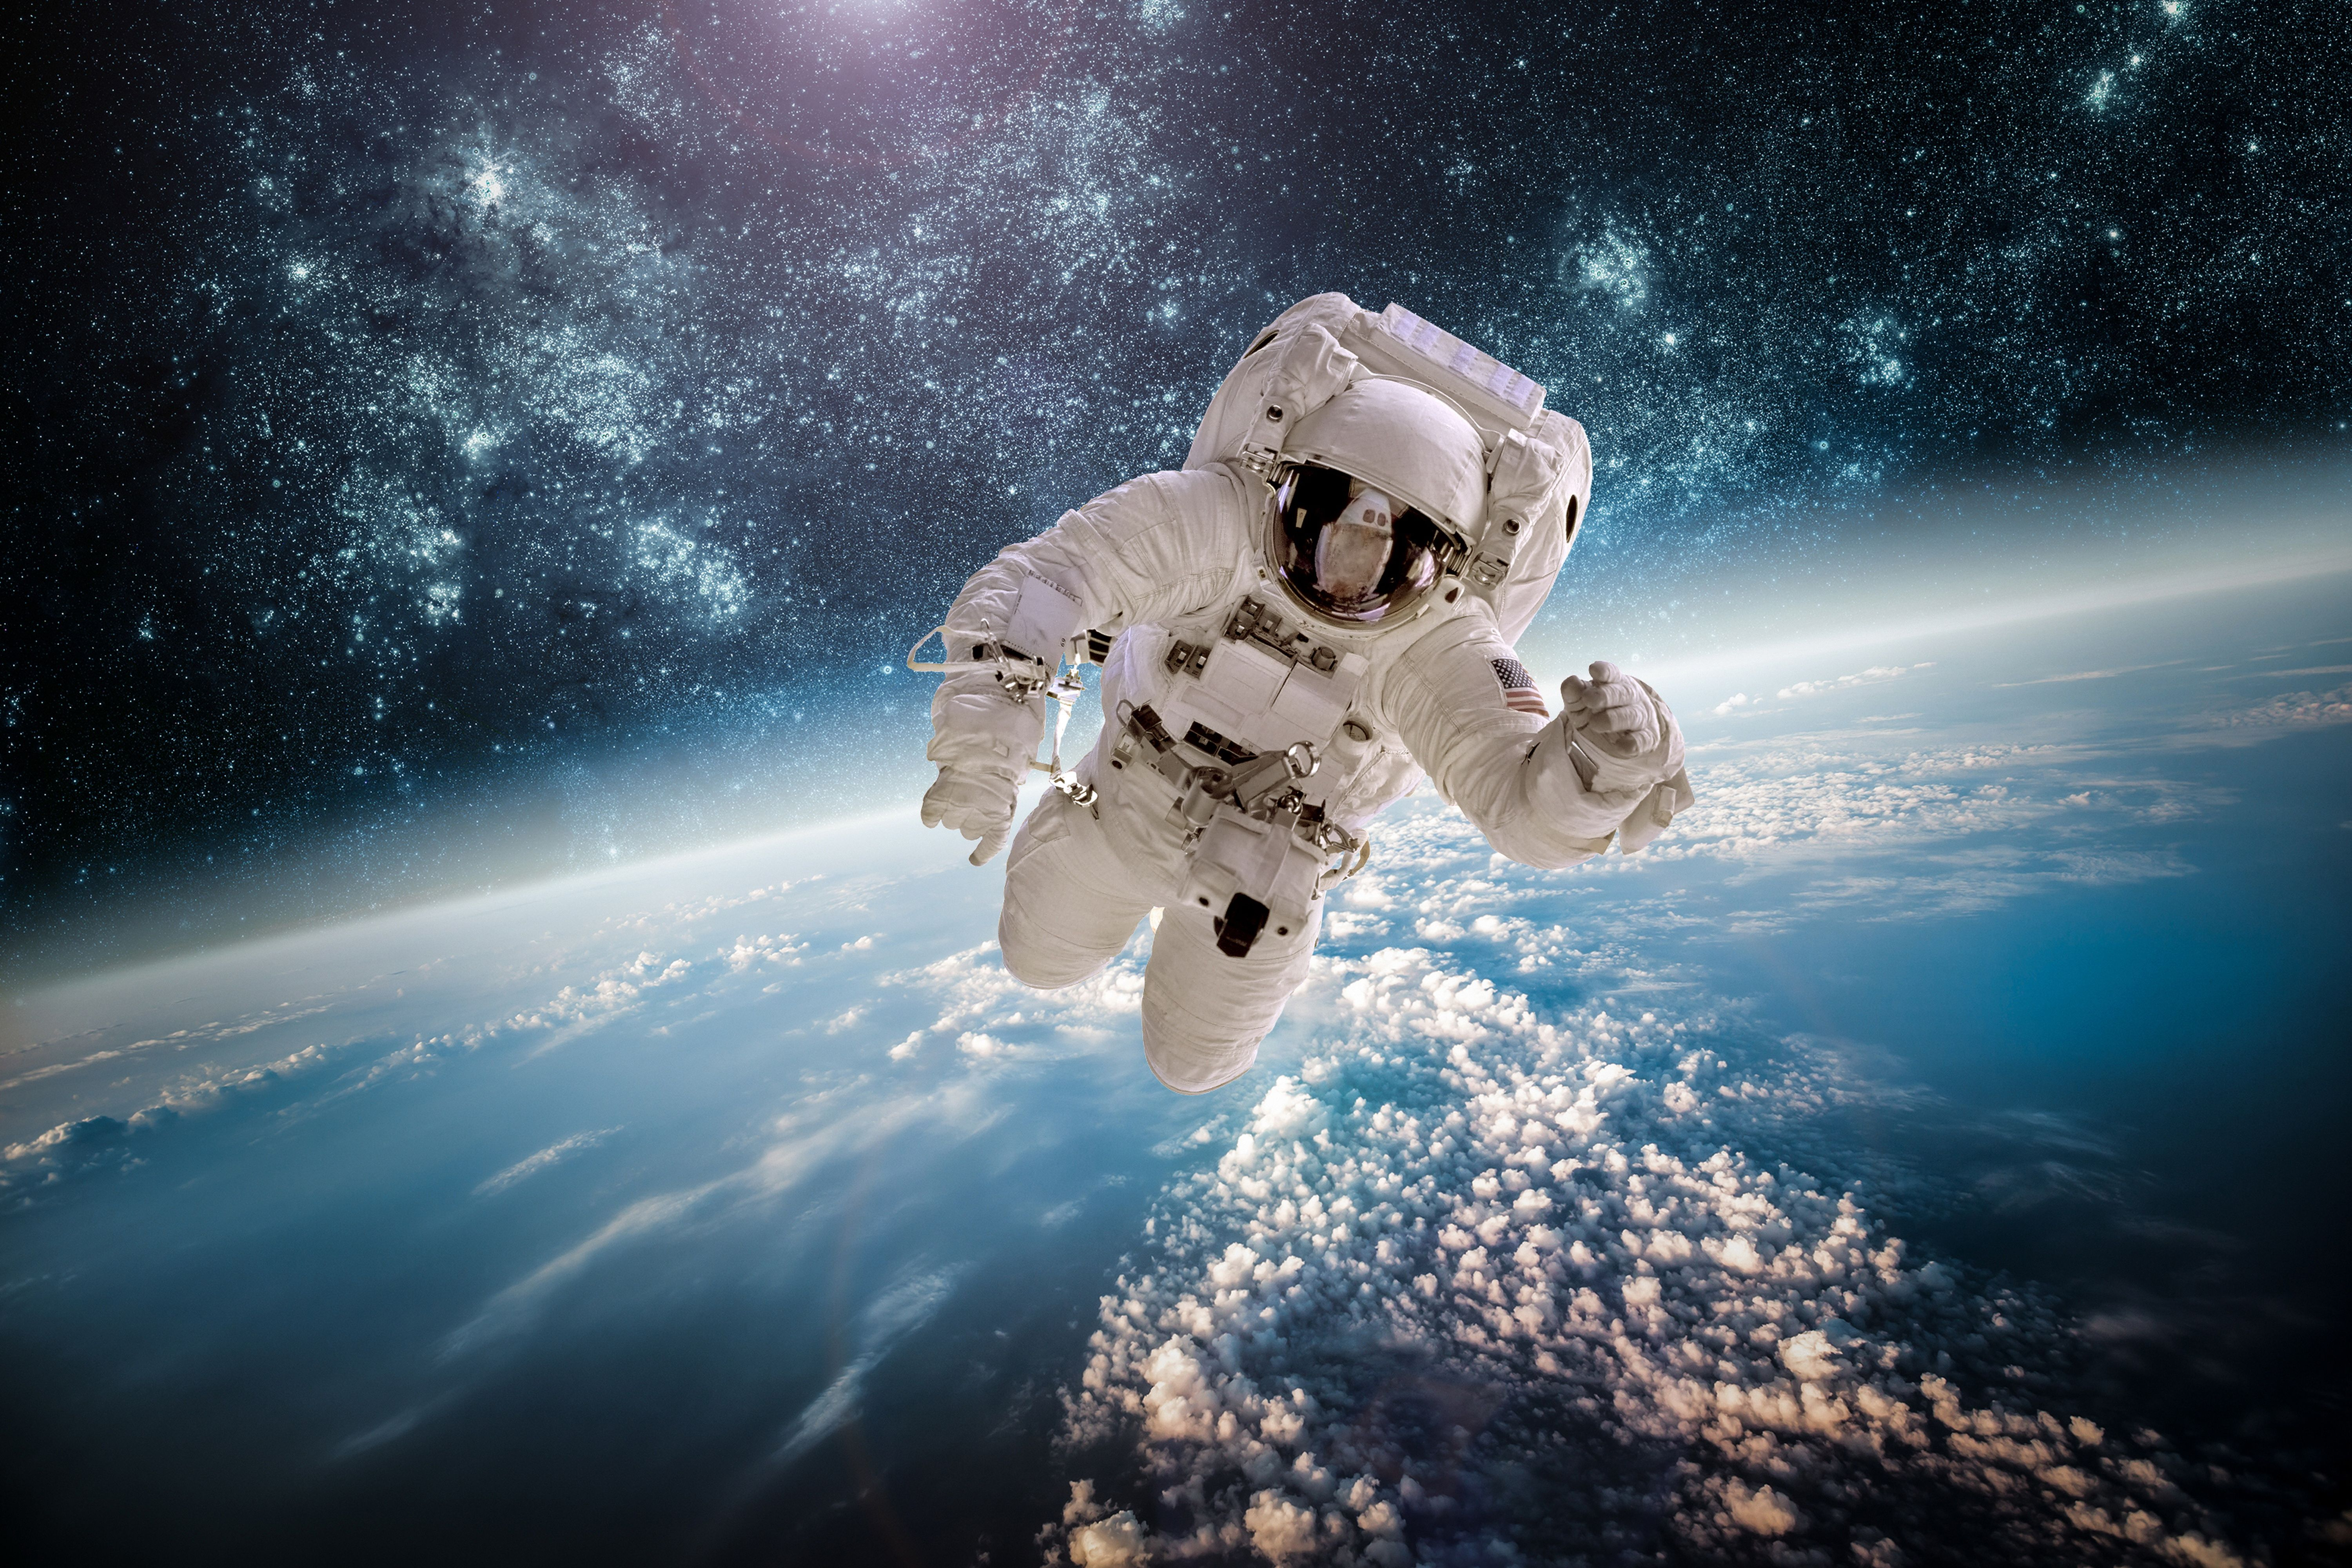 Astronaut In Space Wallpapers Top Free Astronaut In Space